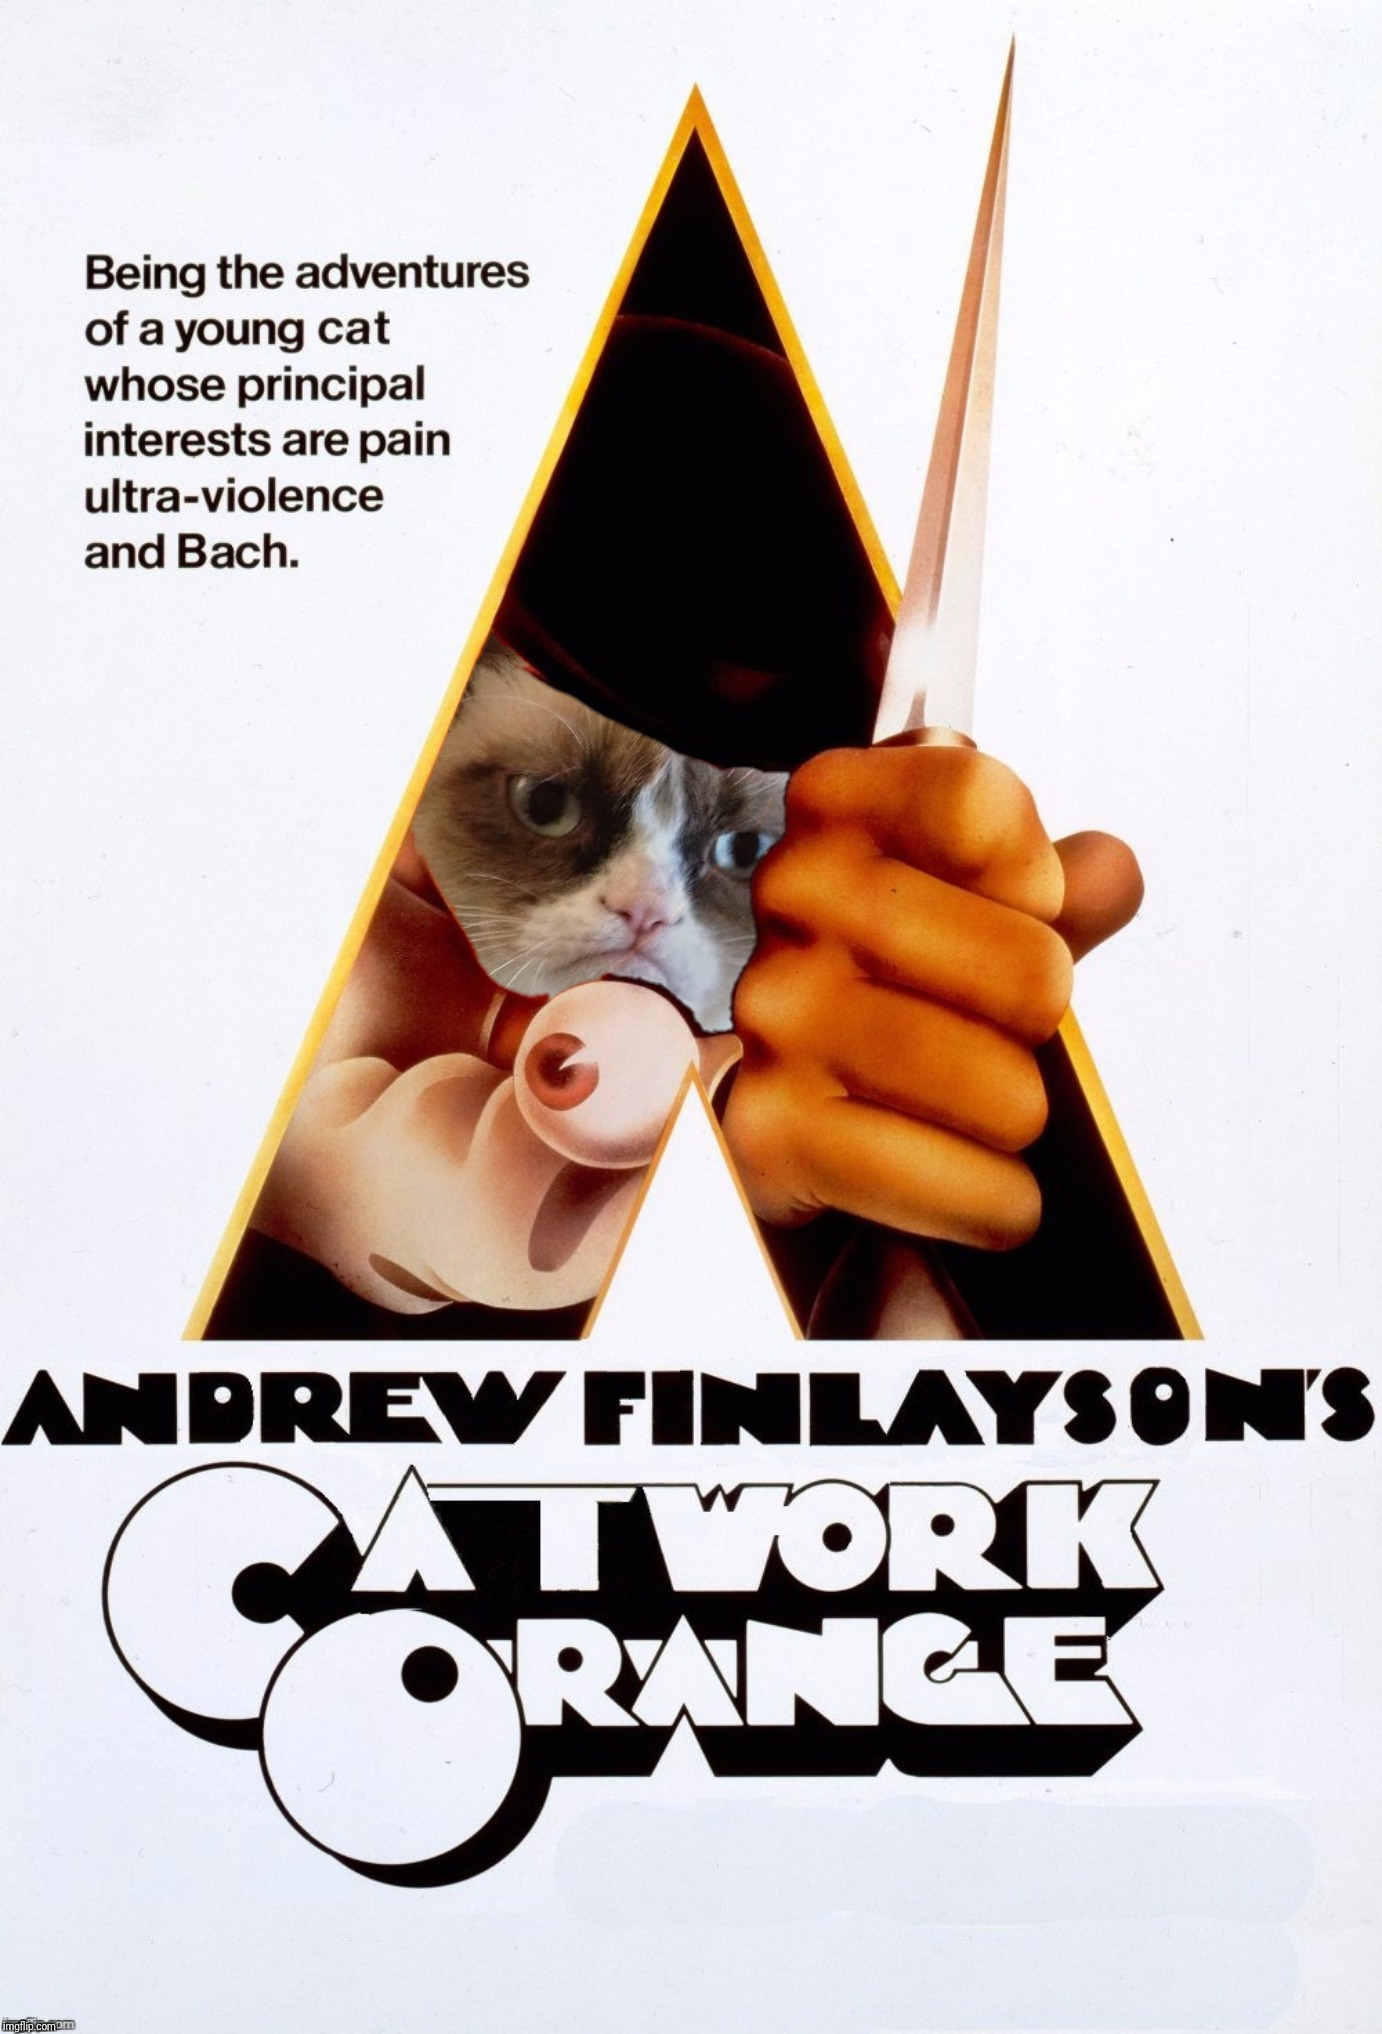 Catwork Orange | CATWORK ORANGE | image tagged in stanley kubrick,clockwork orange,movie poster,scumbag steve,show more,views | made w/ Imgflip meme maker